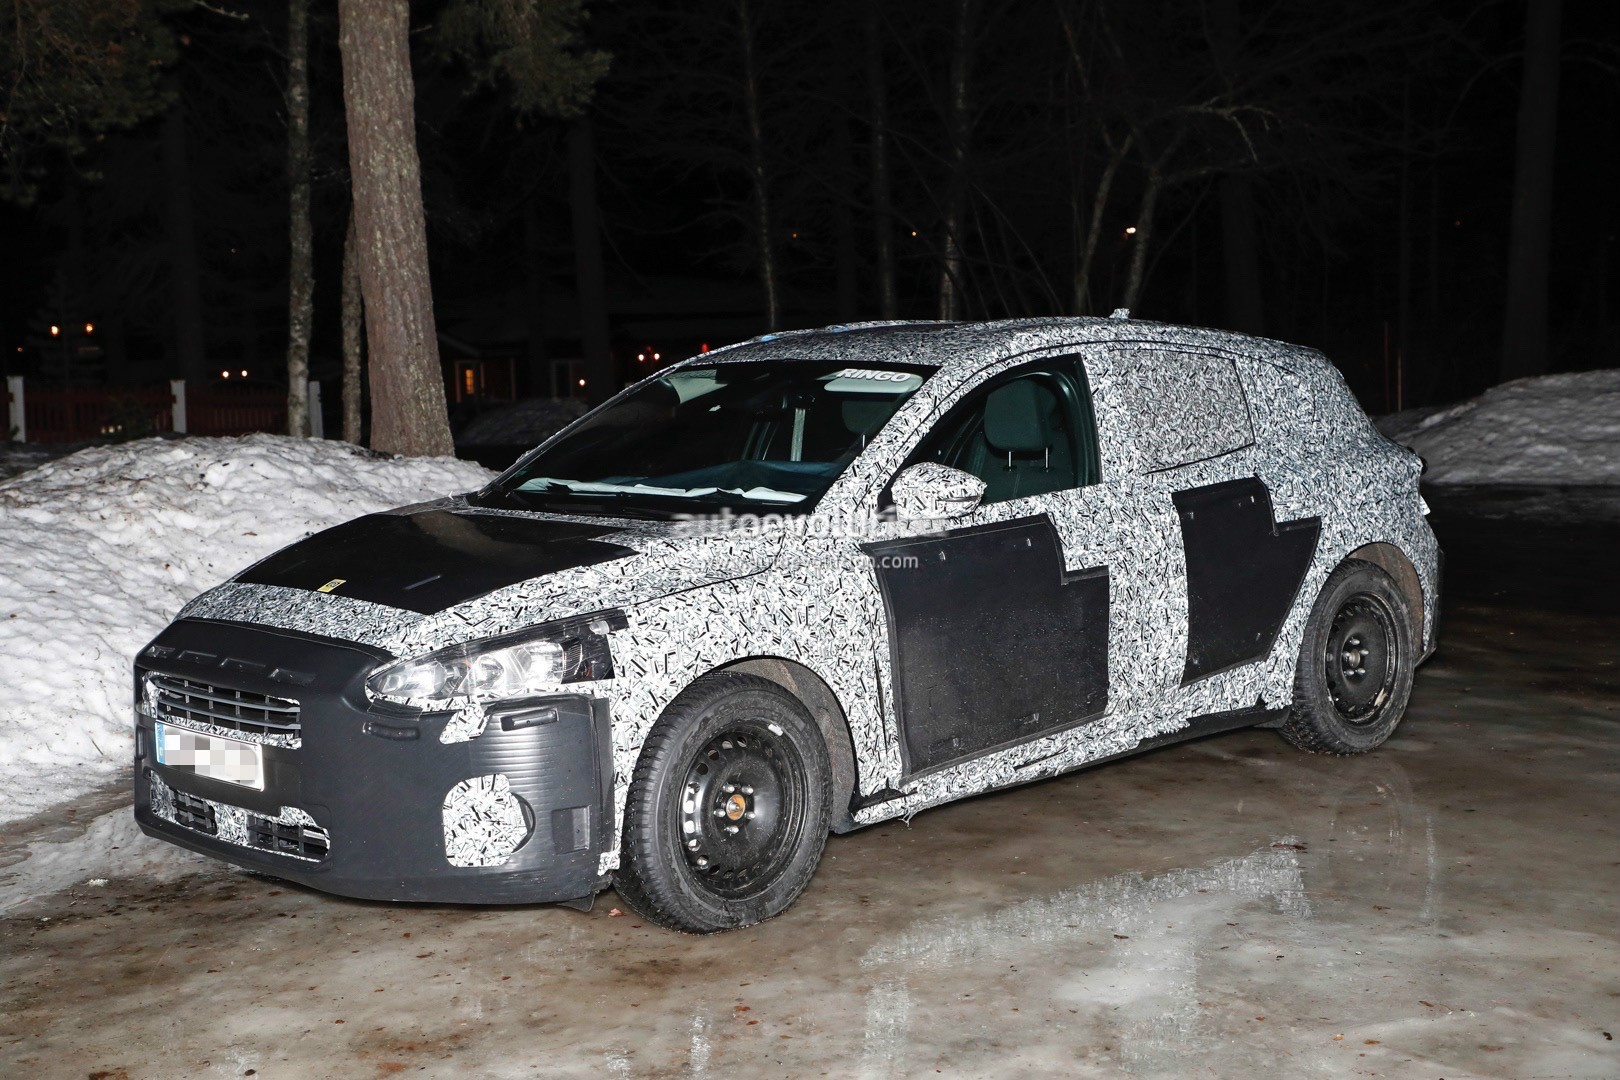 Ford Fayetteville Nc >> 2018 Ford Focus (Mk4) Spied Wearing Production Body Shell